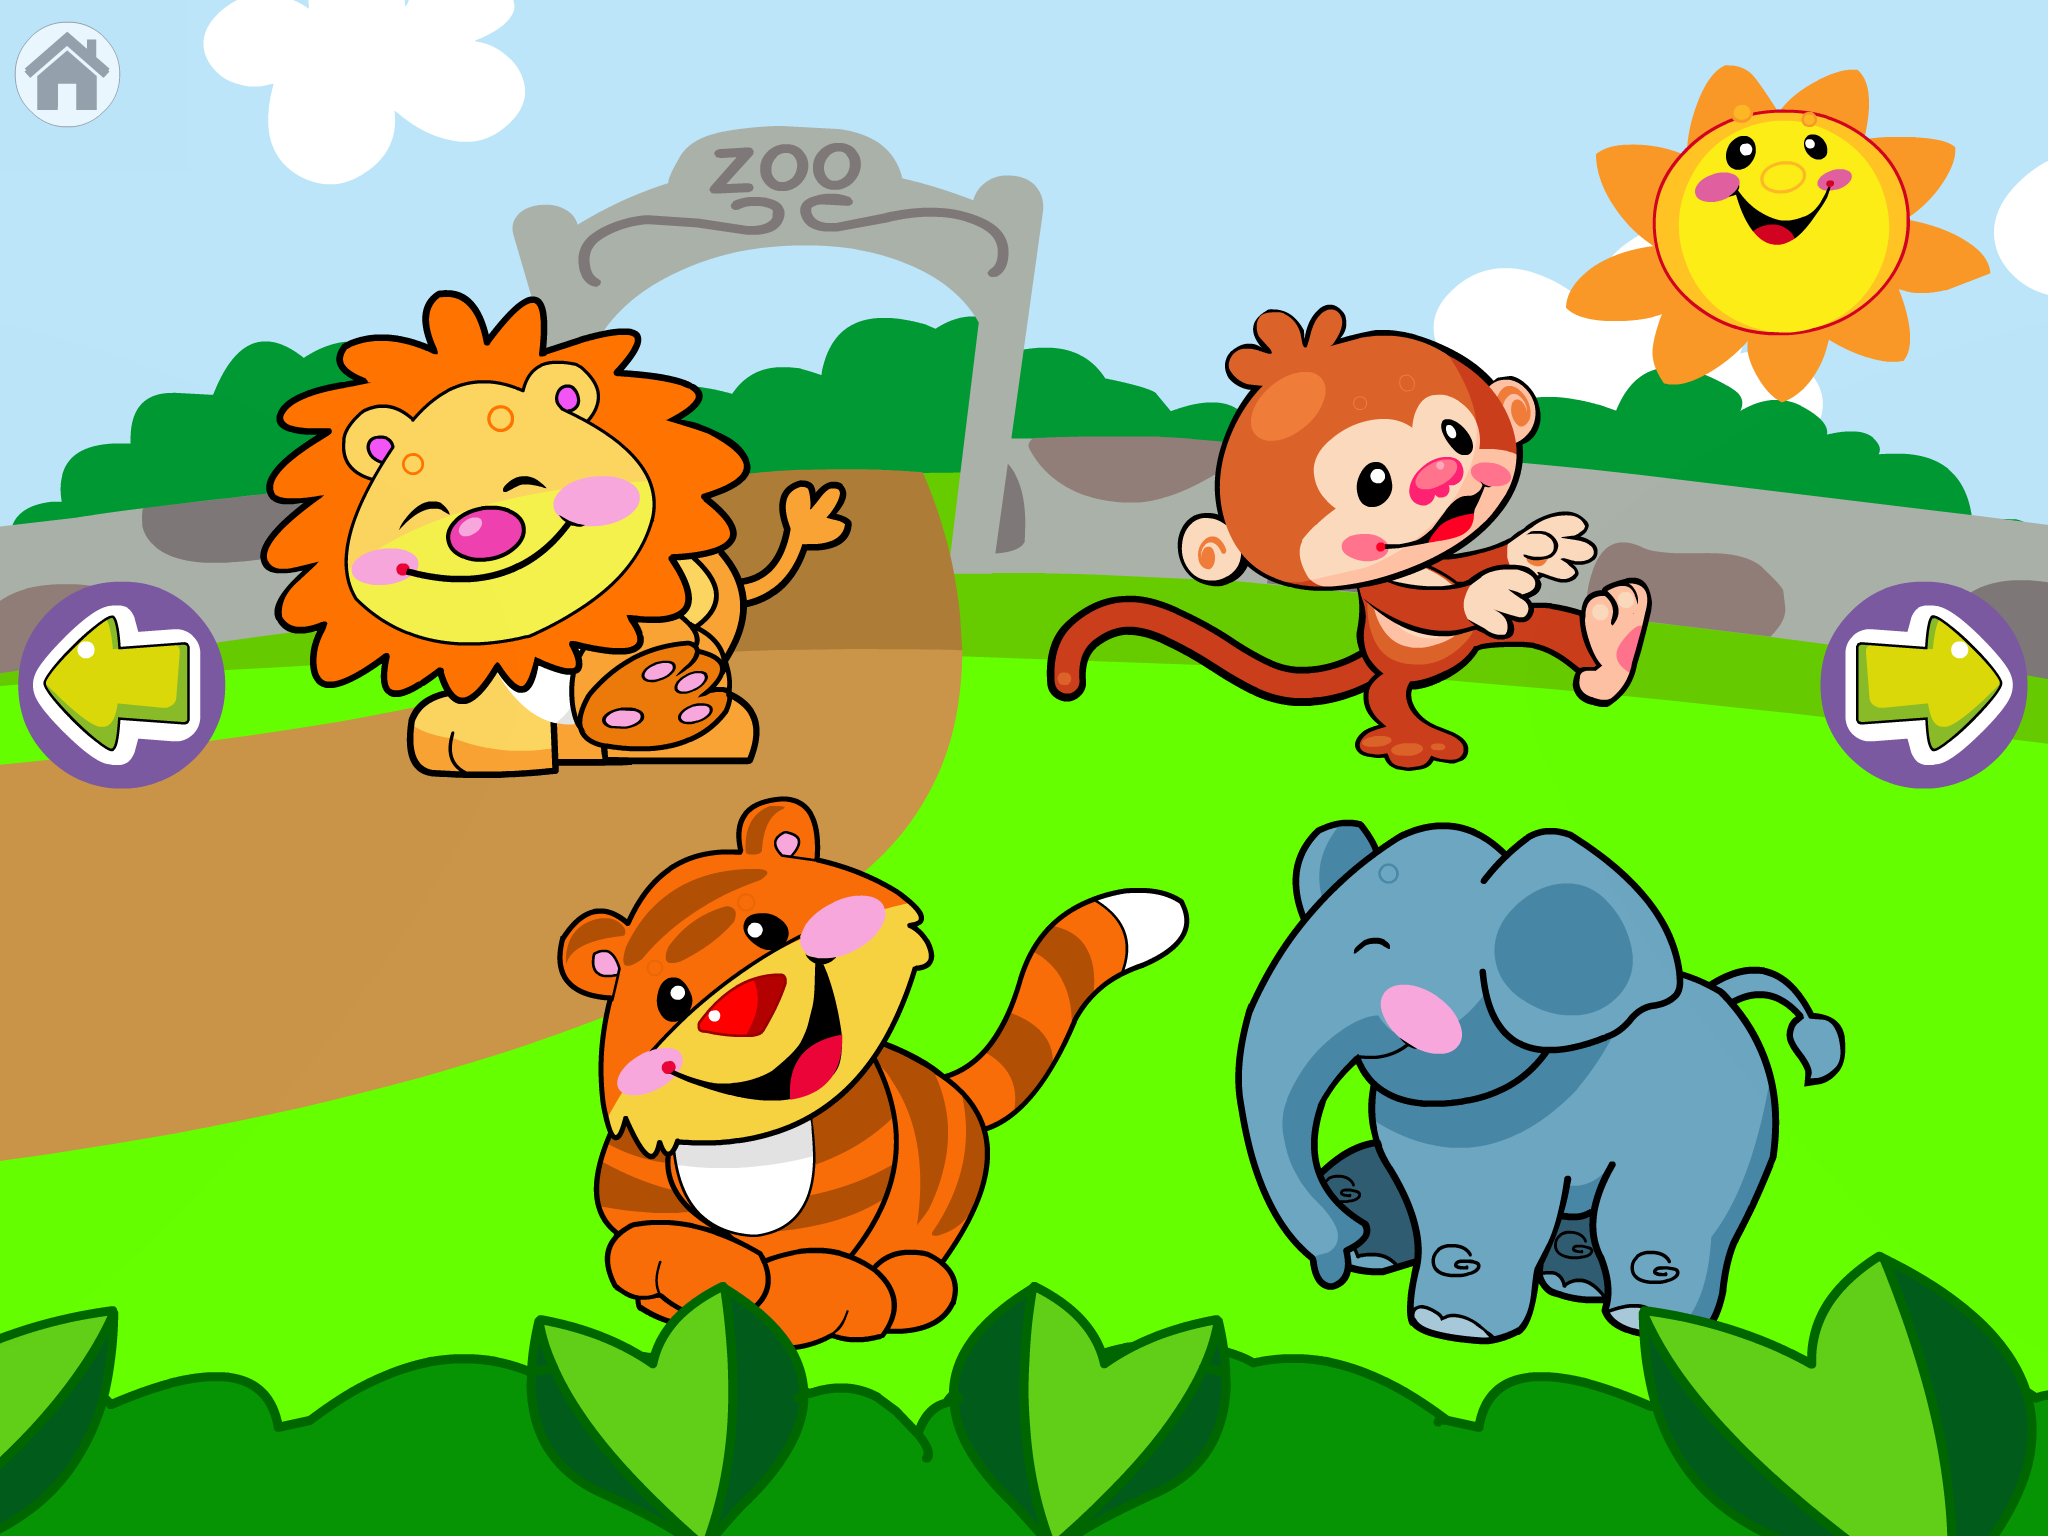 Screenshot of level 2 game with a cartoon lion, monkey, elephant and tiger each in a quadrant. Arrow keys are in the middle of the screen on the left or right edge.